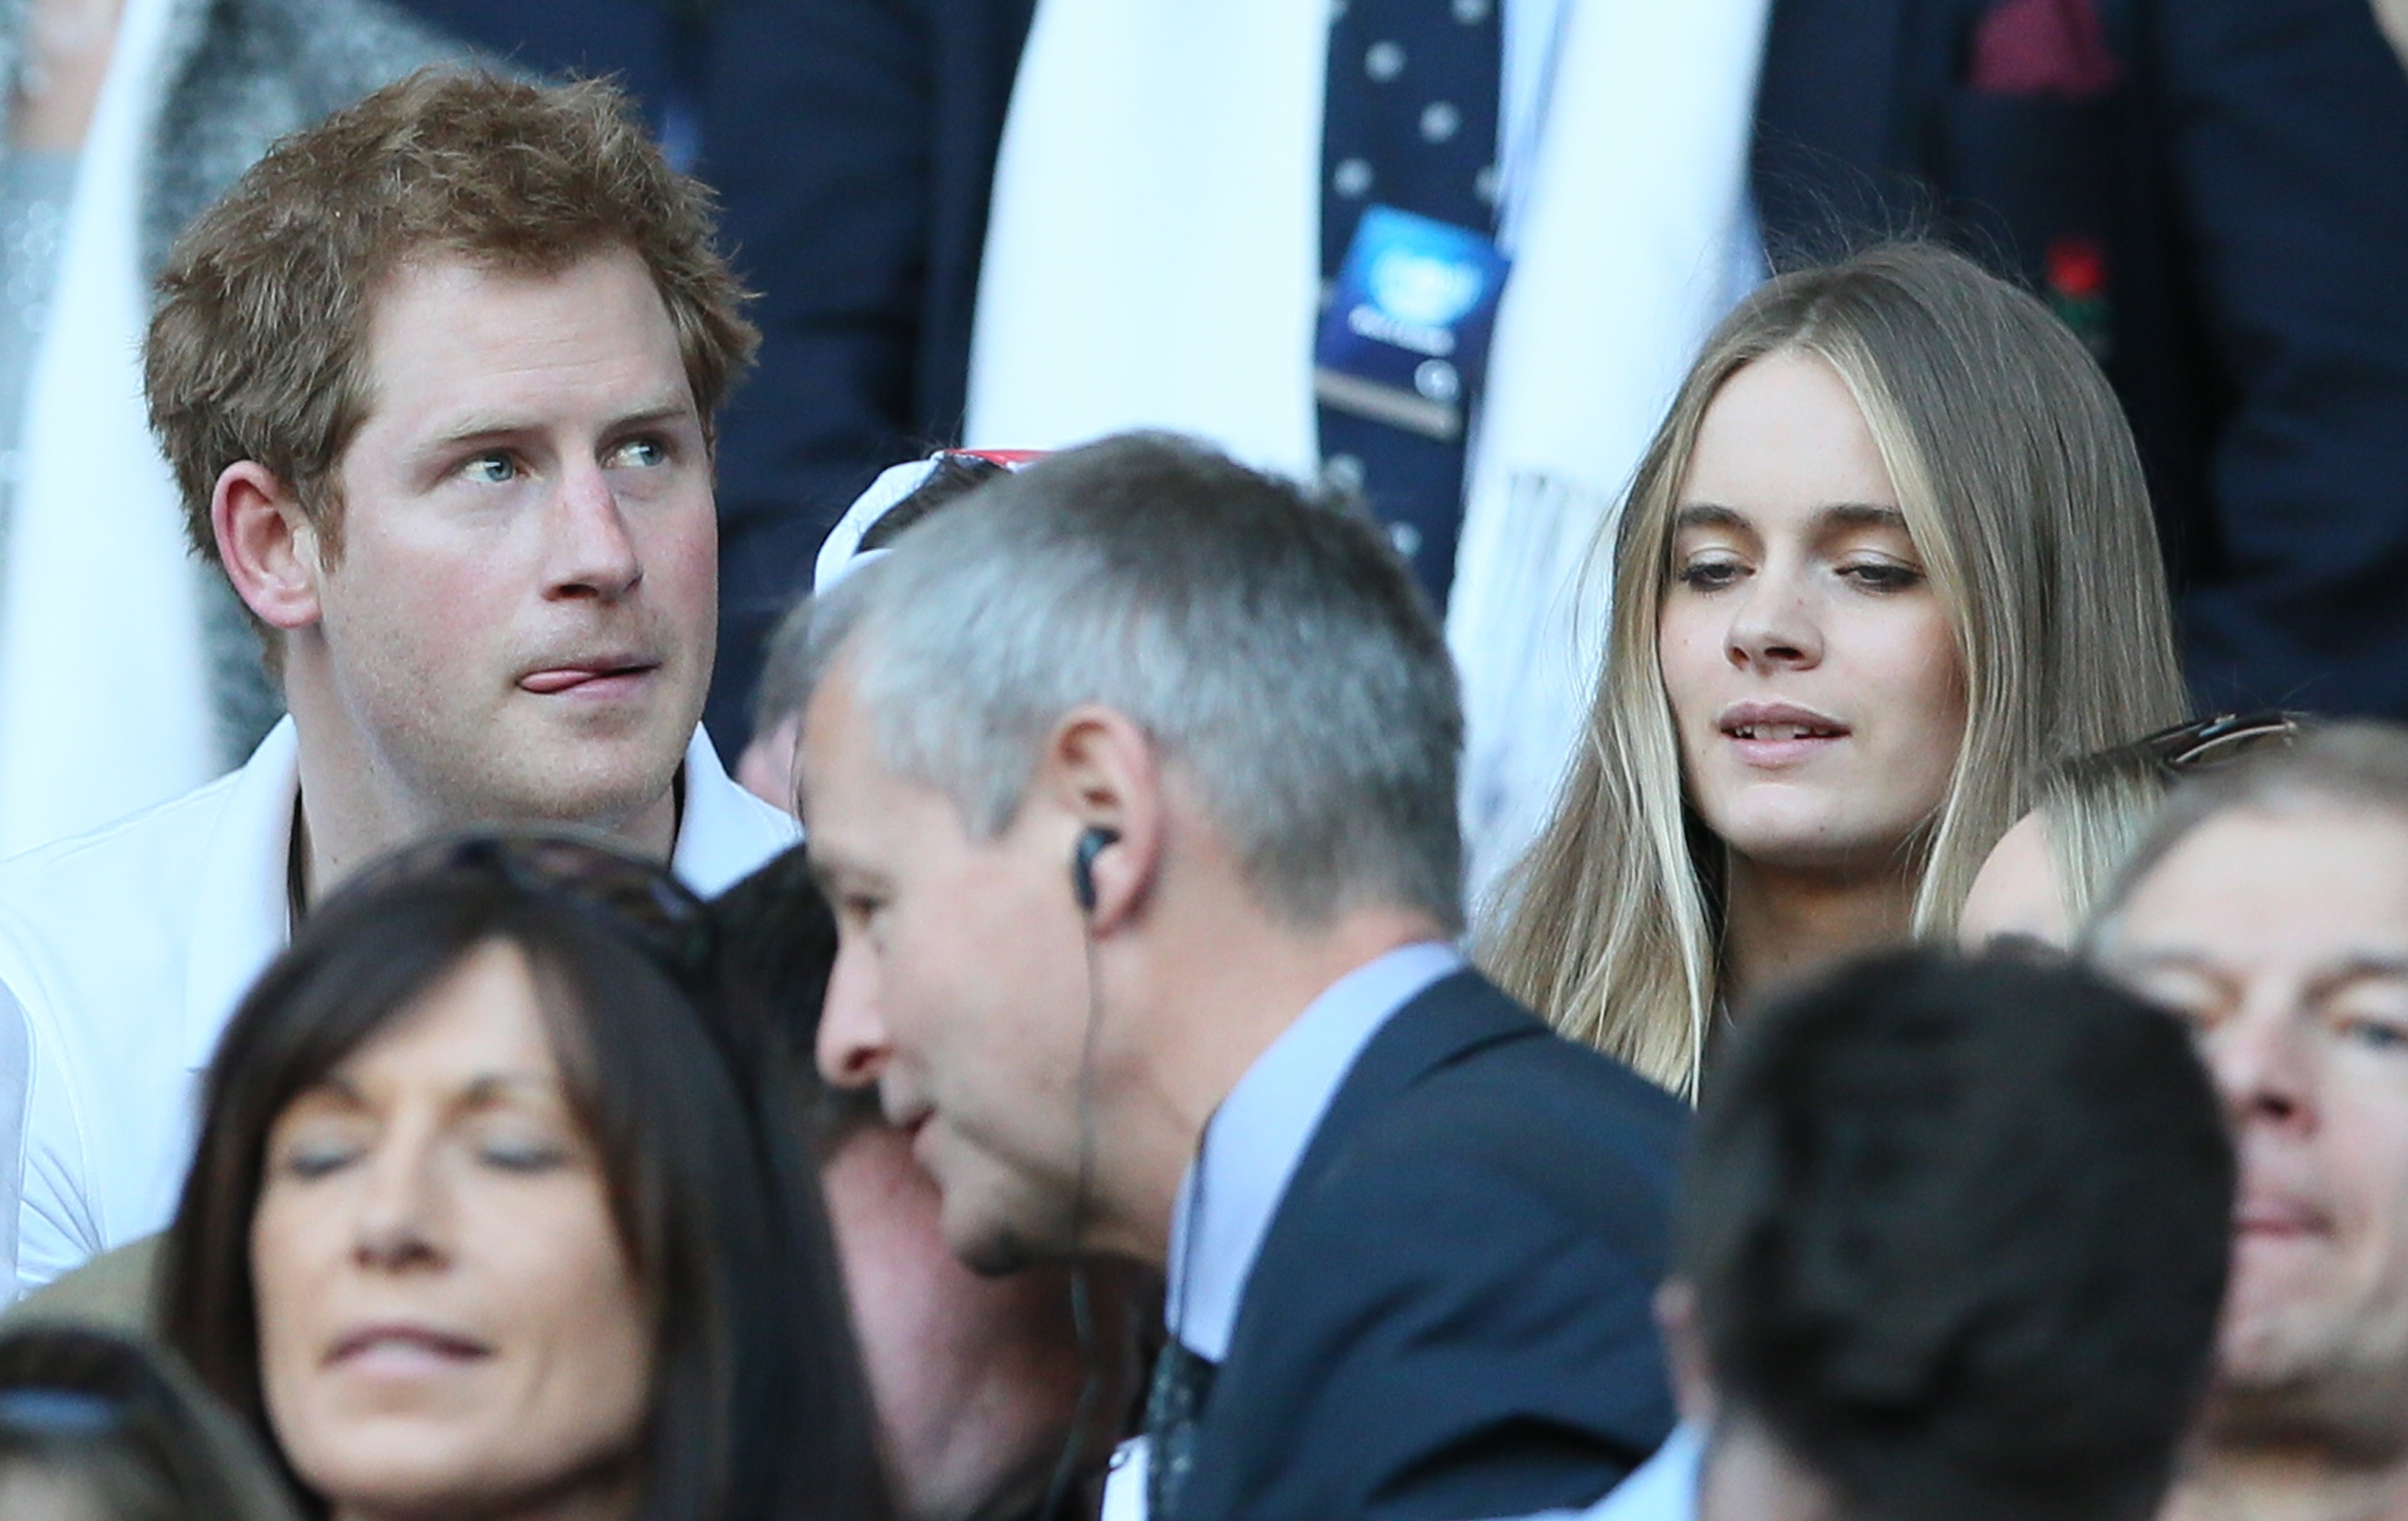 Britain's Prince Harry and his girlfriend, Cressida Bonas, right, shown at a rugby match in March, have reportedly split up.